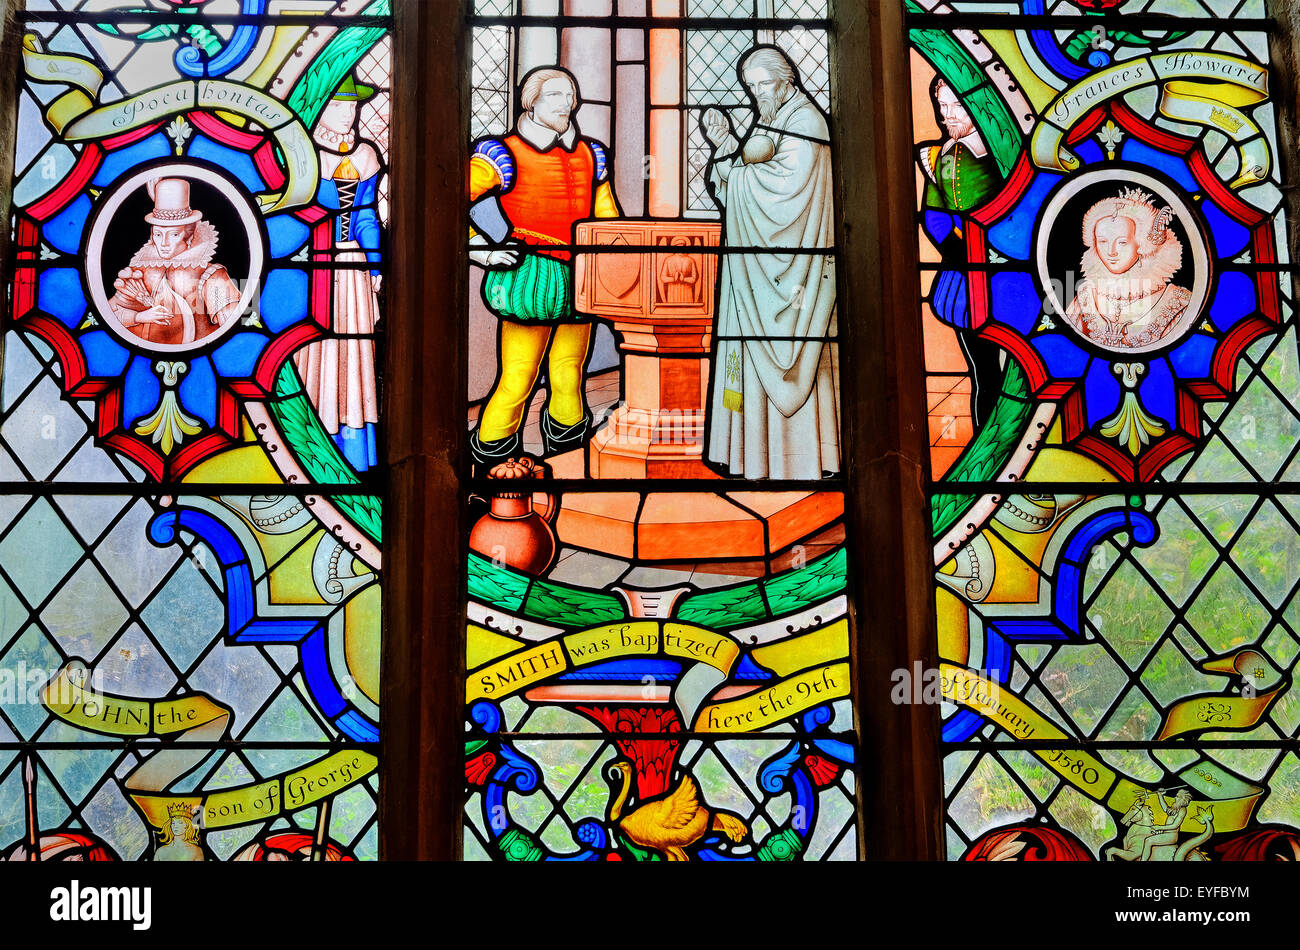 Stained glass window in the parish church in Willoughby, Lincolnshire,UK. It depicts the christening of John Smith - Stock Image